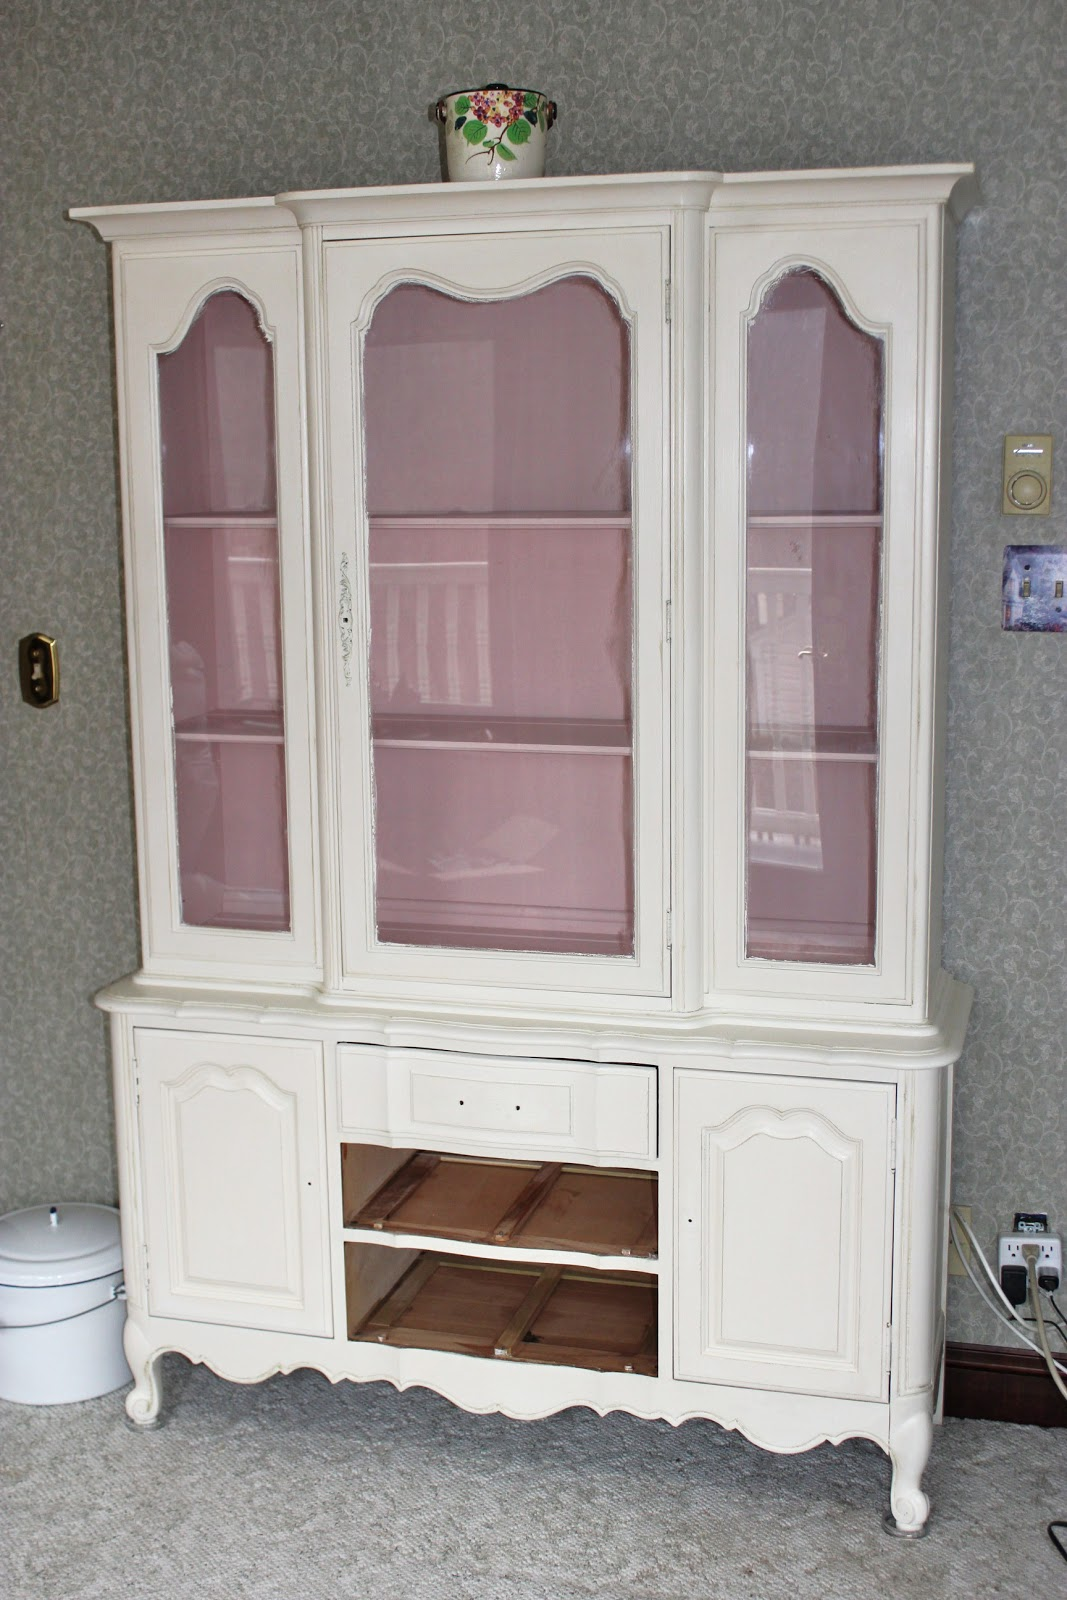 How Much Paint Do I Need For A China Cabinet